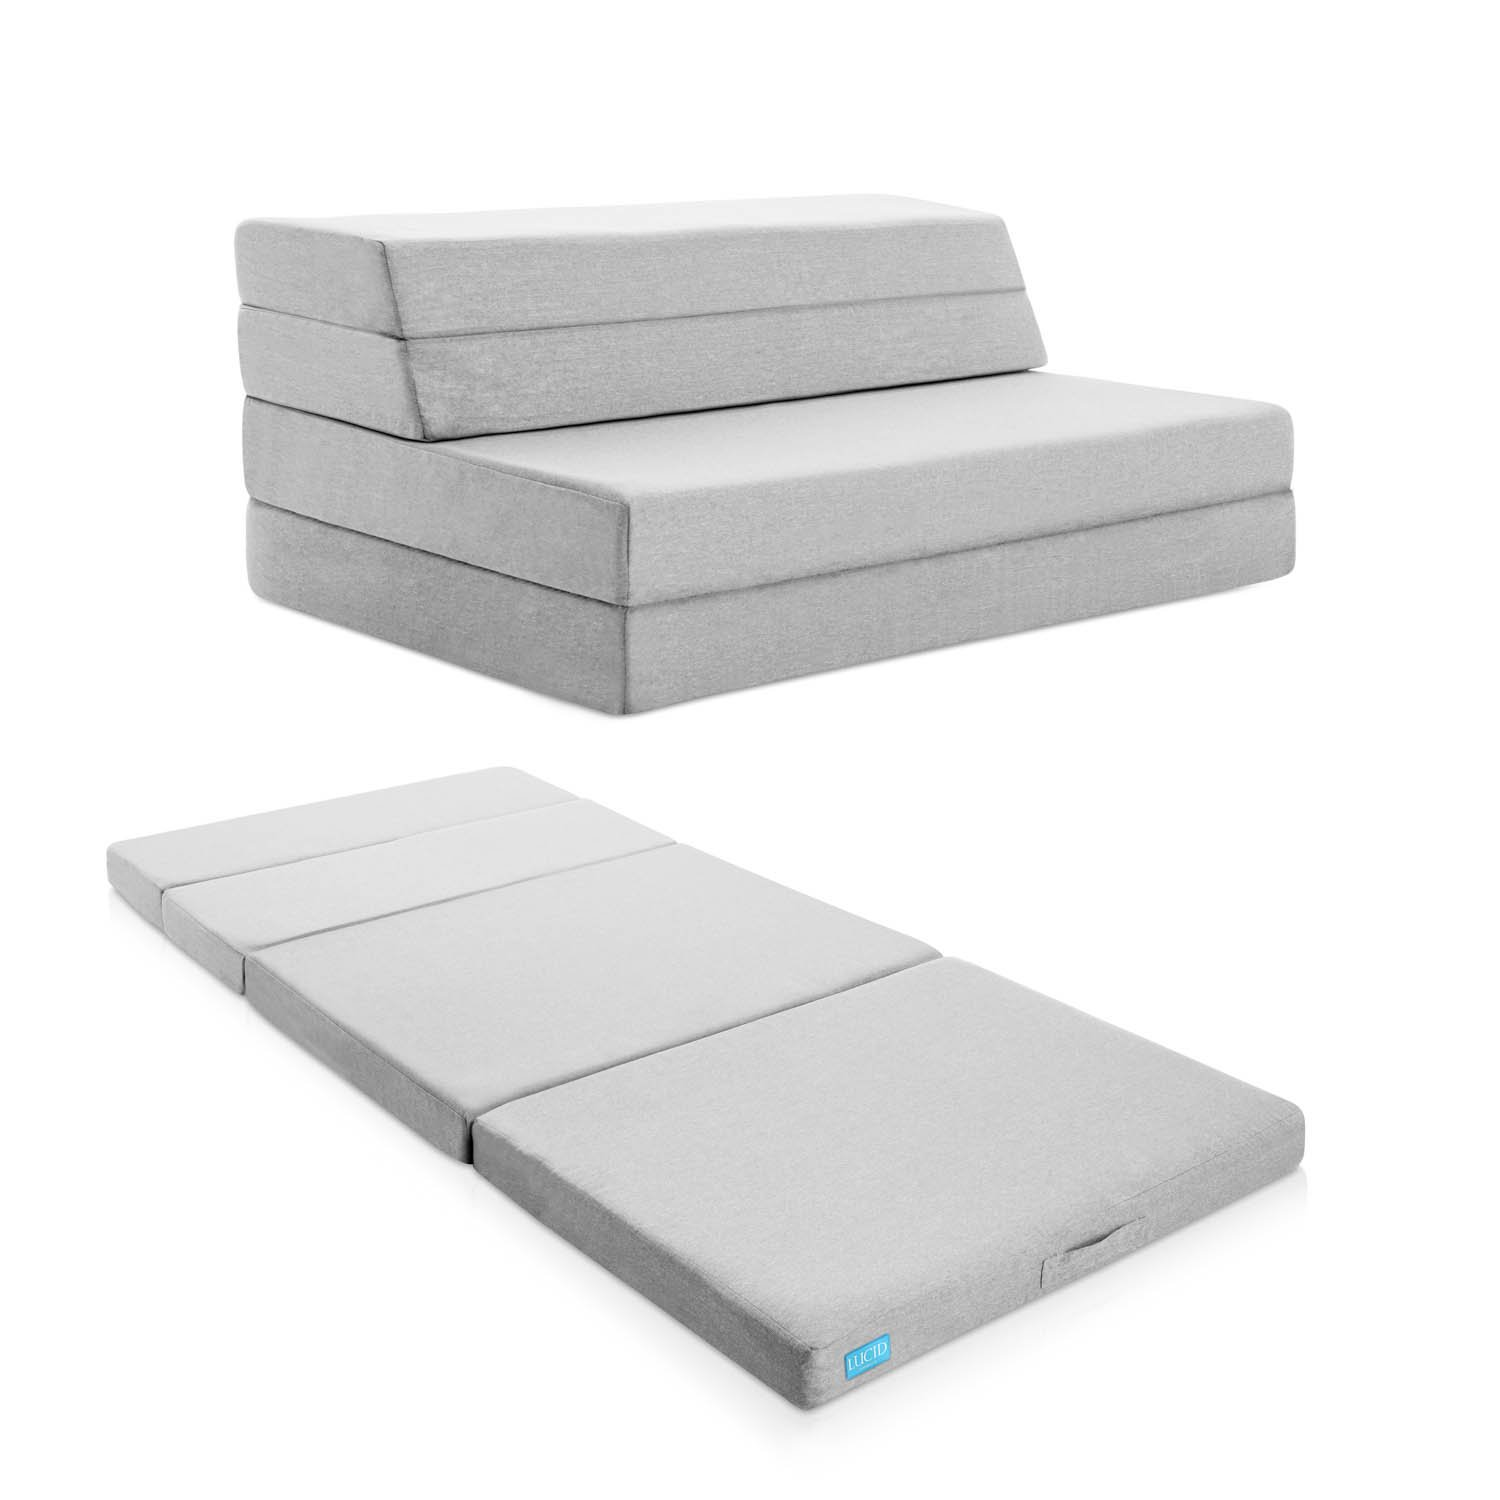 LUCID 4 Inch Folding Mattress and Sofa with Removable Indoor/Outdoor Fabric Cover - Full Size CVB Inc LU04FFFSGF2